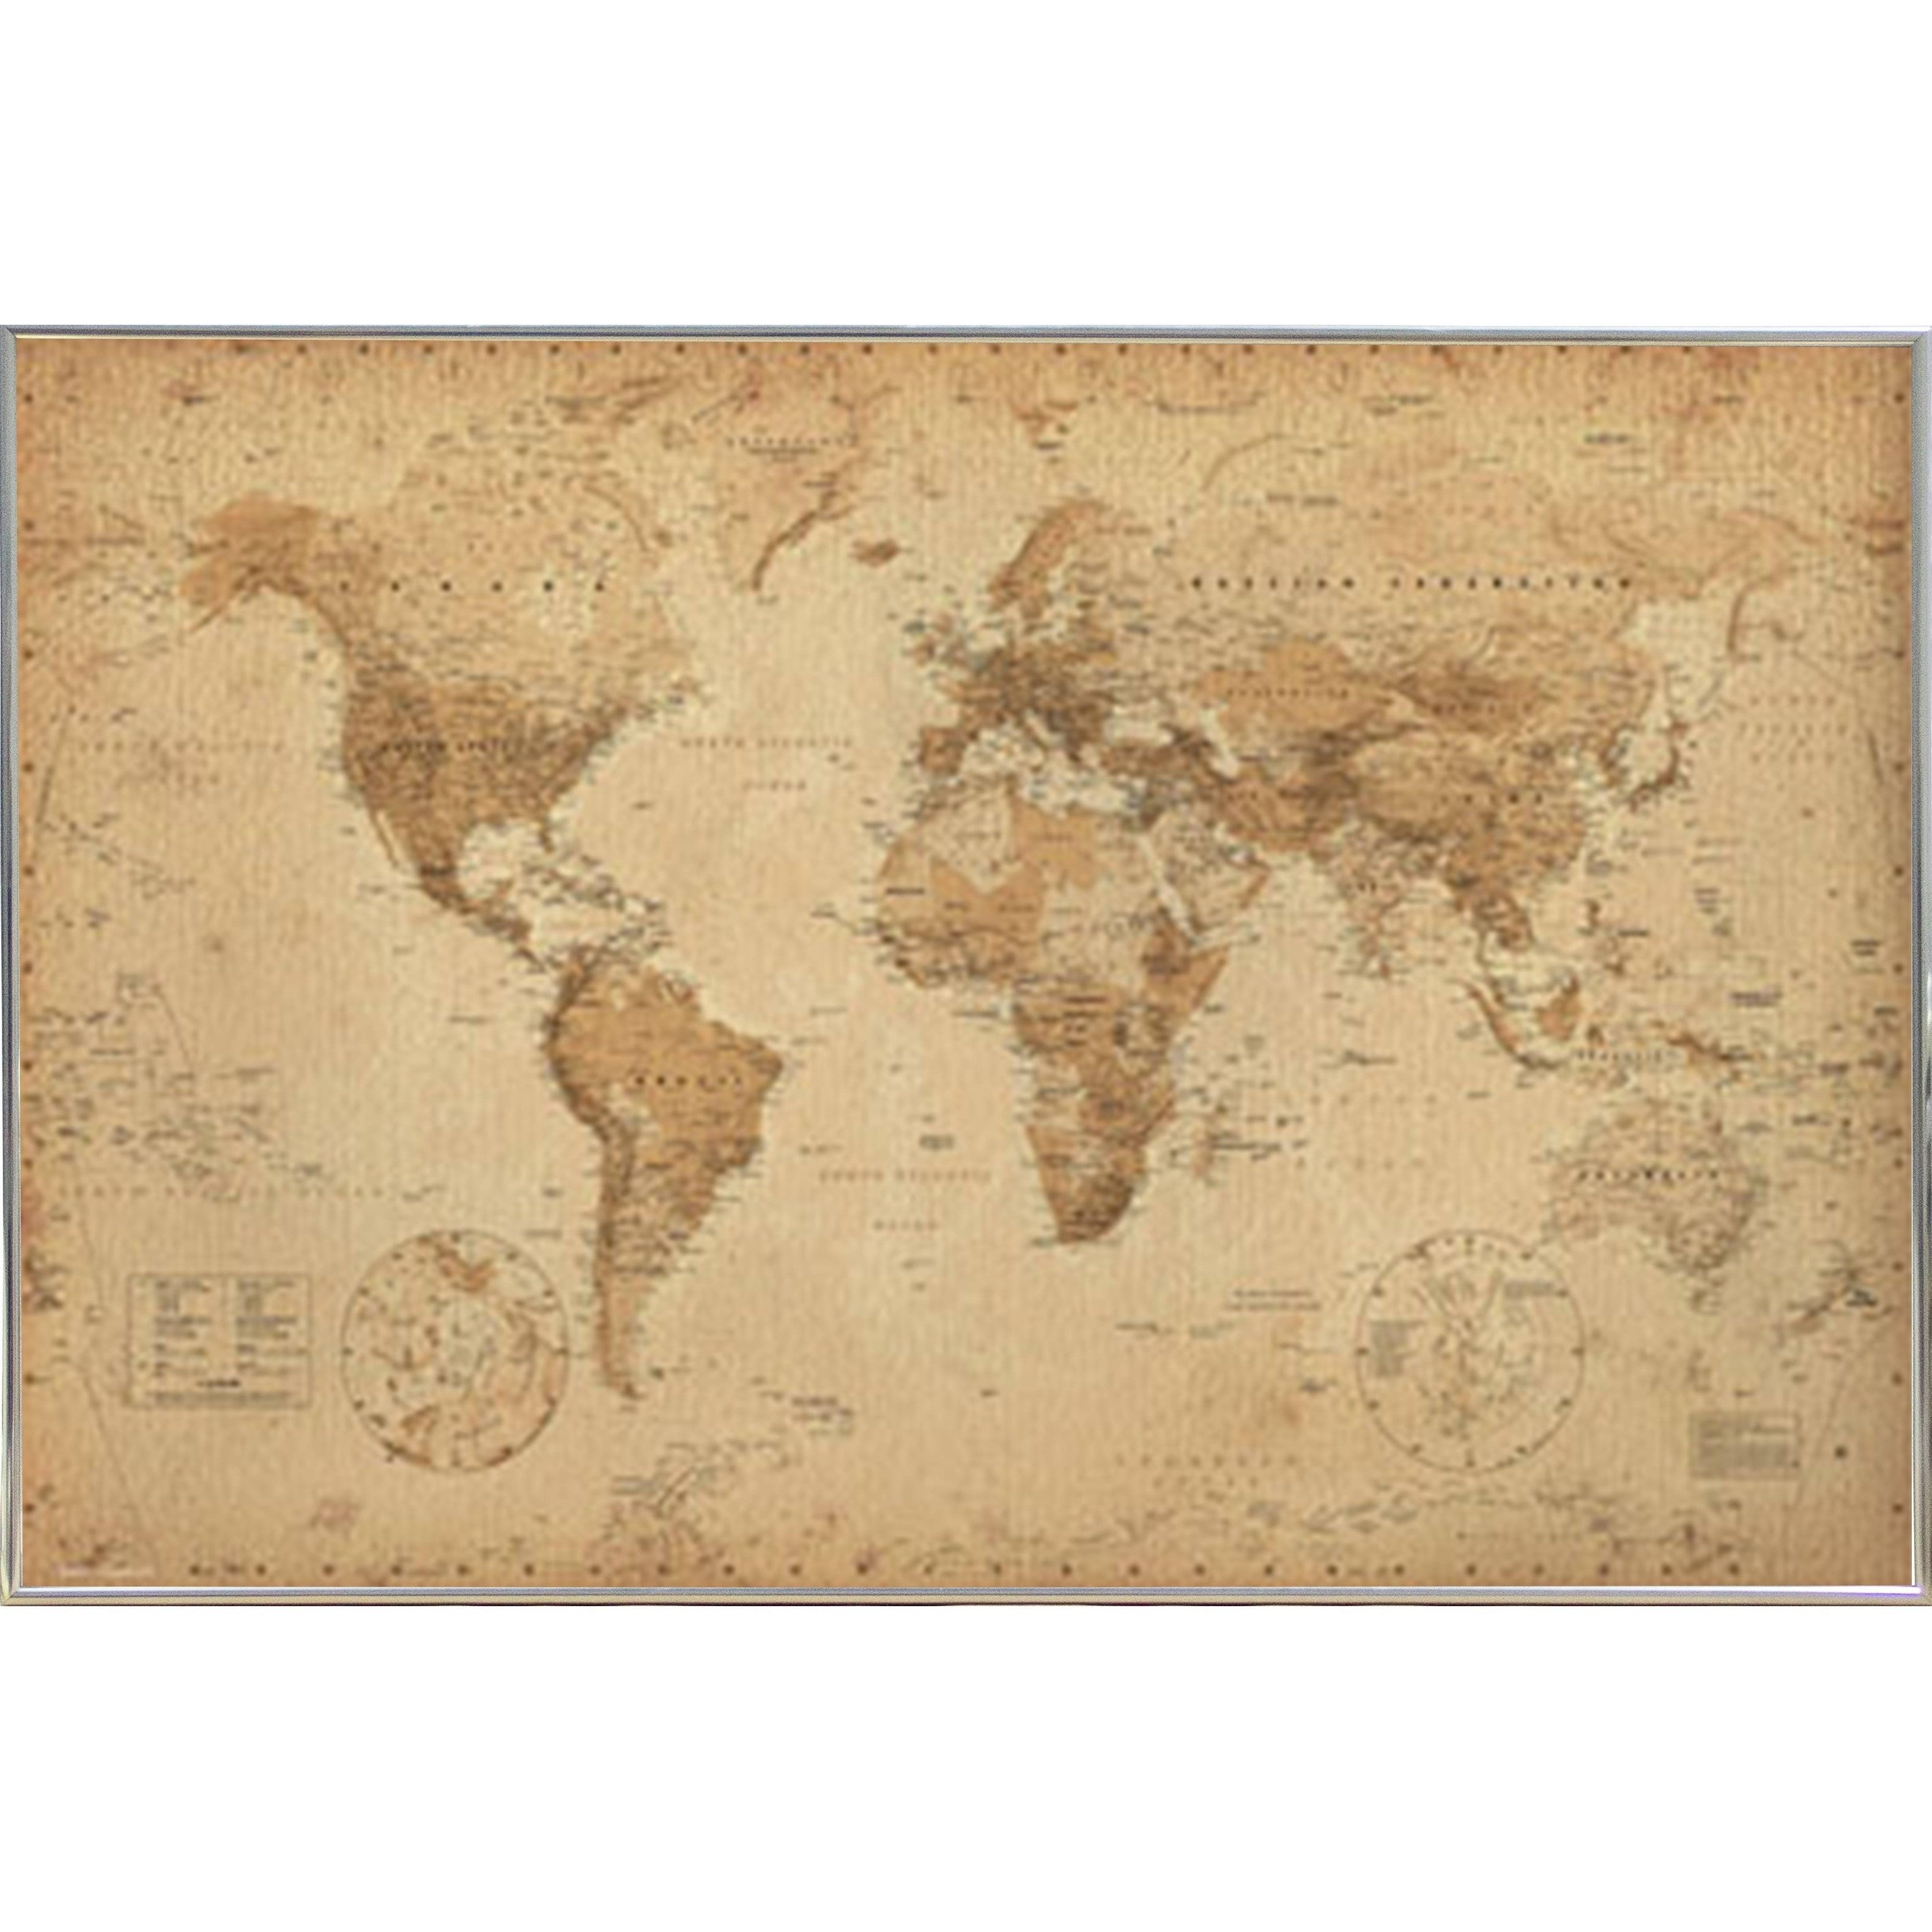 World Map Antique With Choice of Frame (24x36) (black wood frame ...